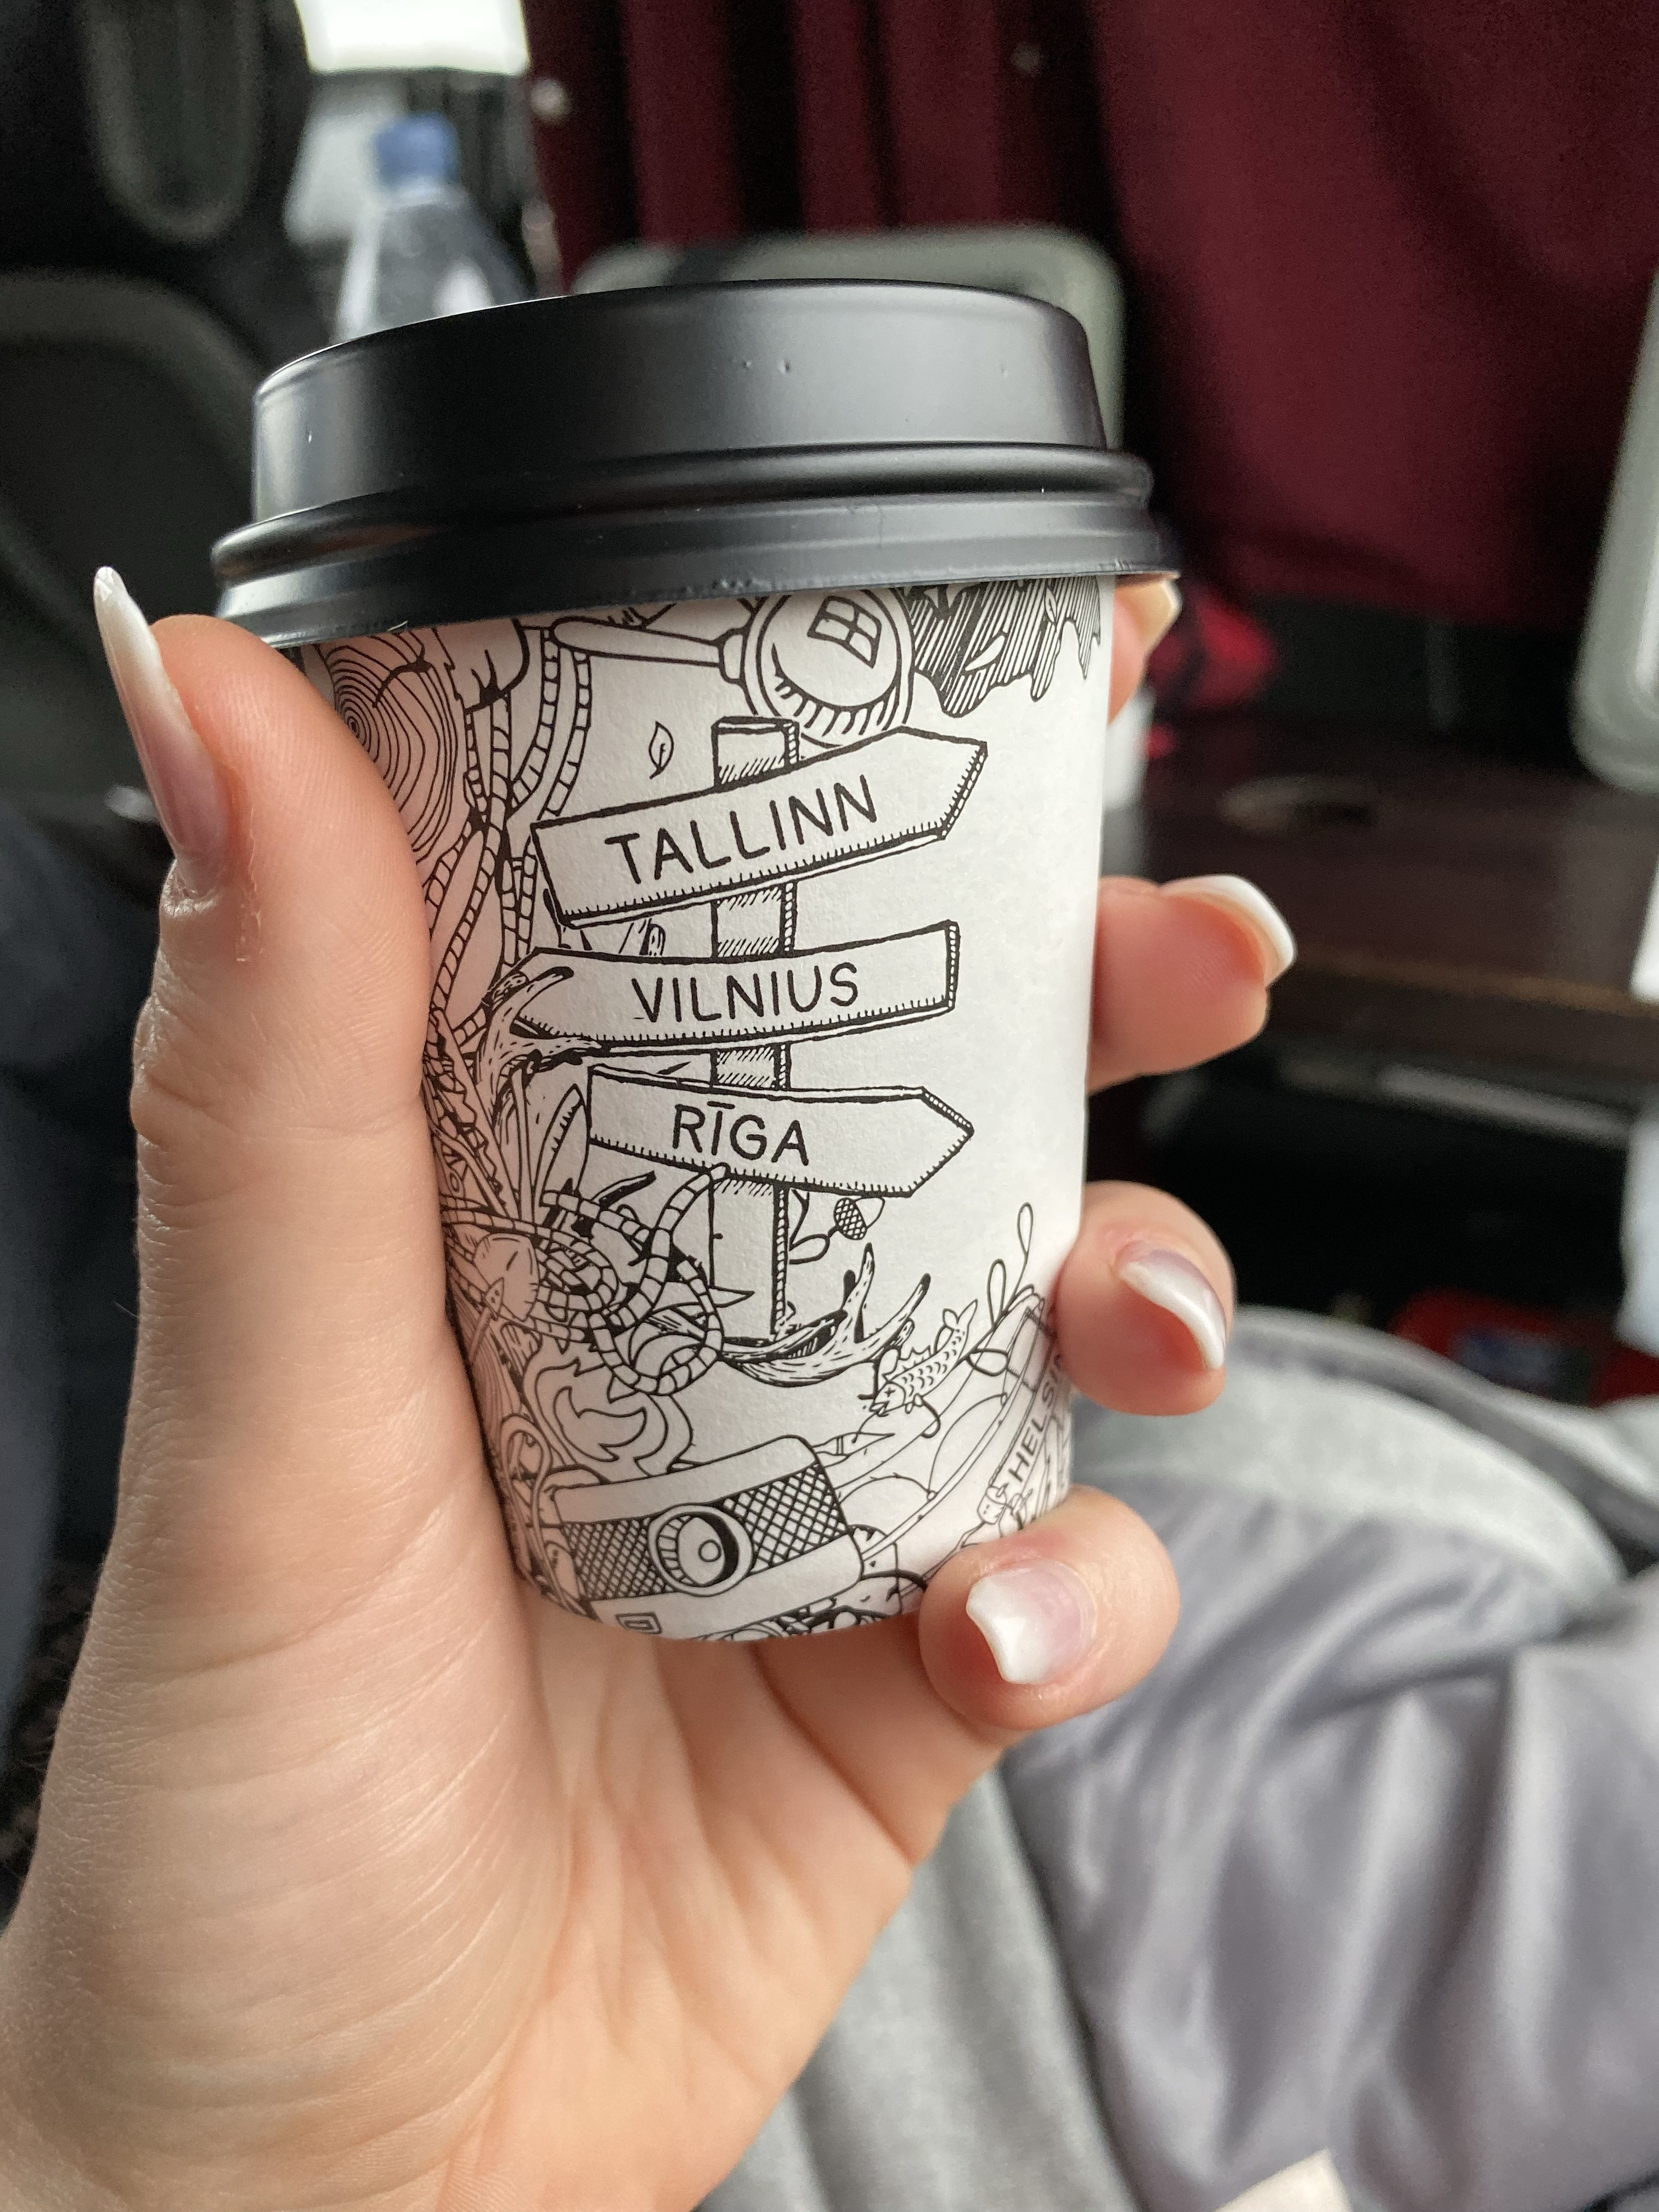 A coffee cup with directional signs for Tallinn, Vilnius and Riga on it.